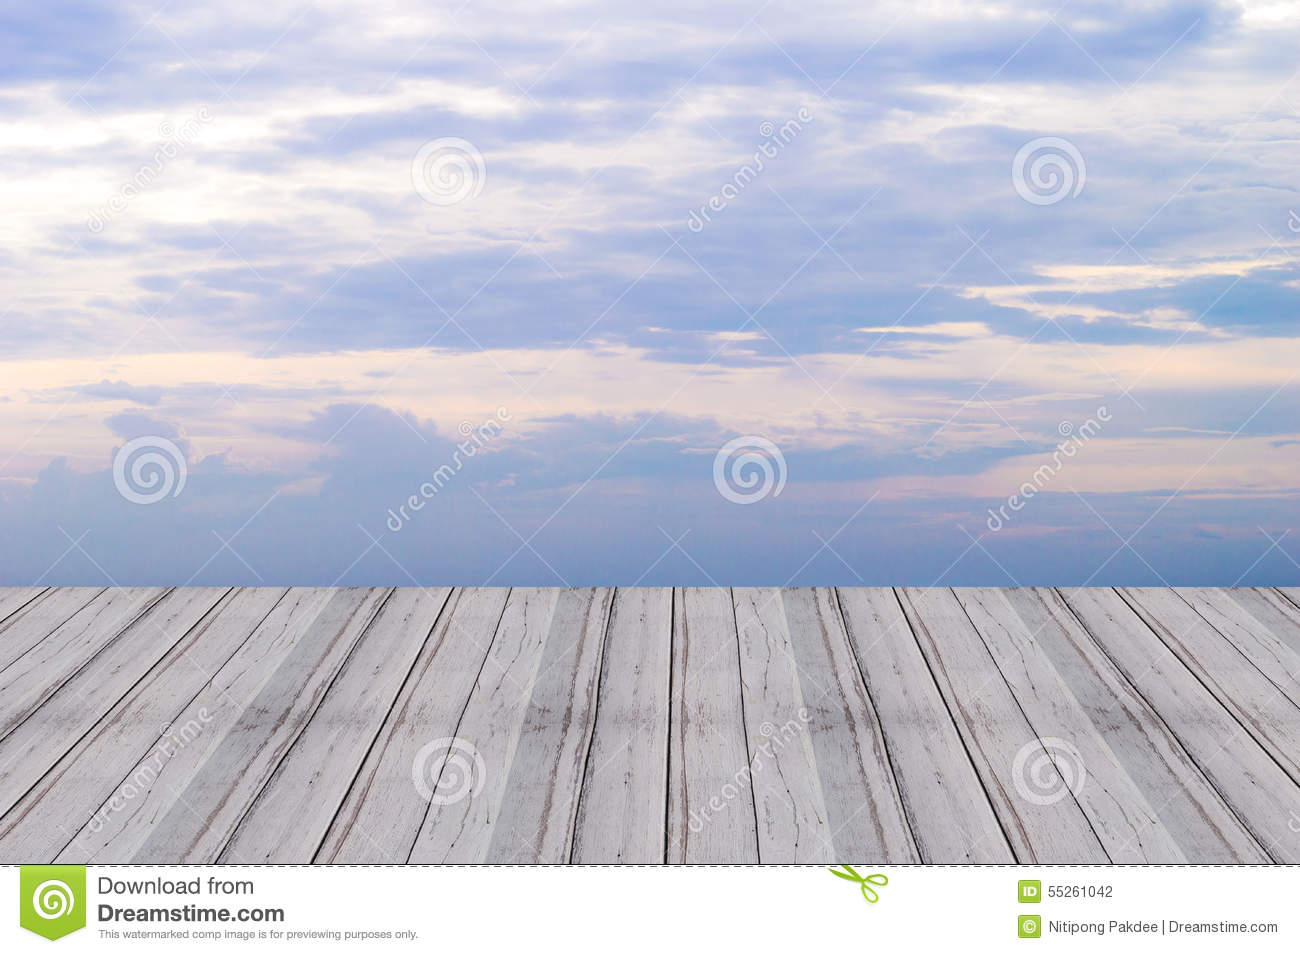 Jpg Texture Background Free Stock Photos Download 105 545: Wood Wall Floor Room Design Perspectives Sky Background